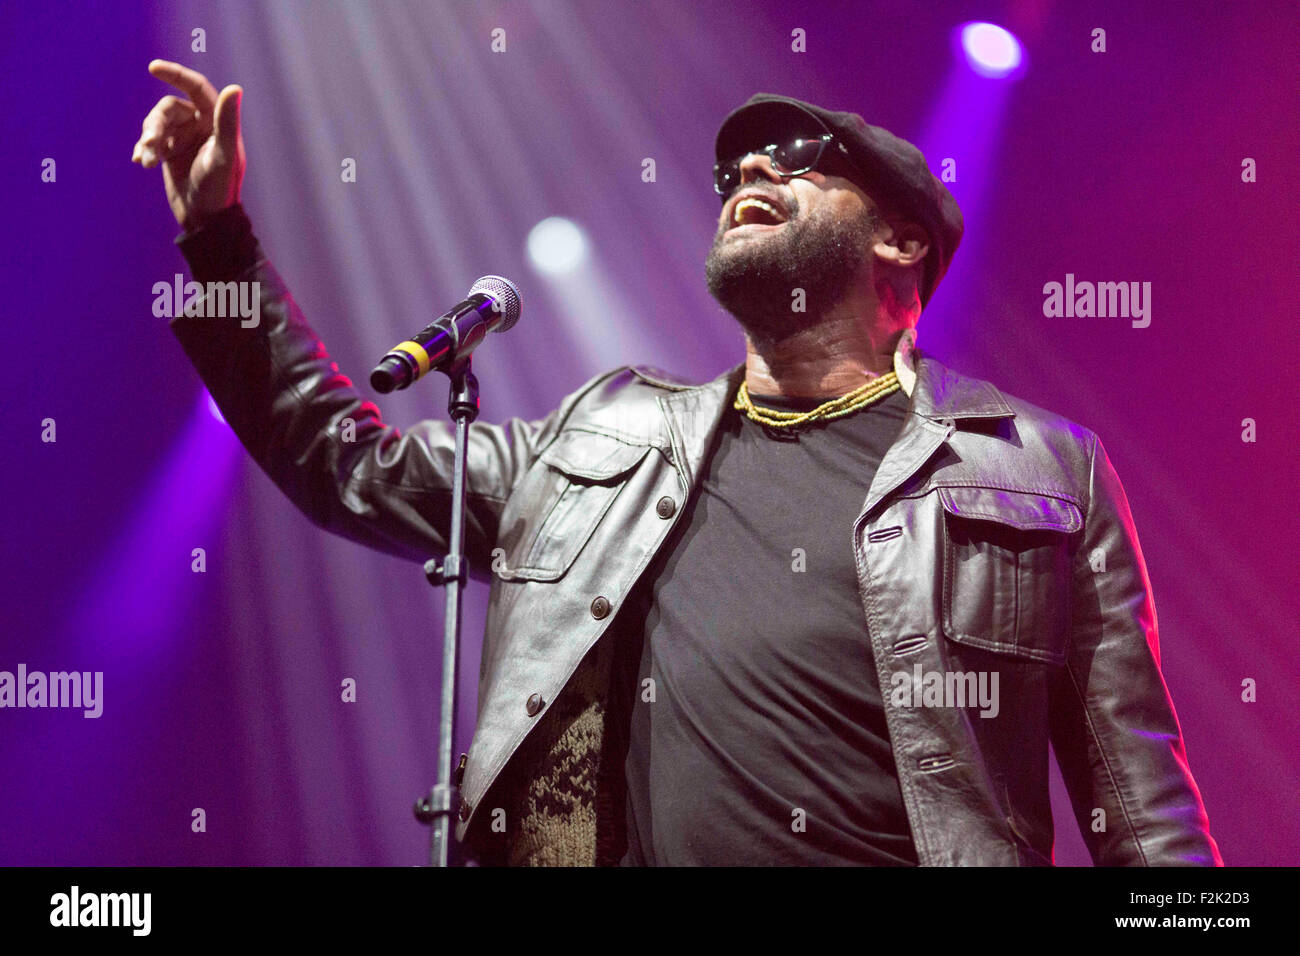 19/9/15 With Love From Liverpool Concert. Garry Christian lead singer of The Christians - Stock Image